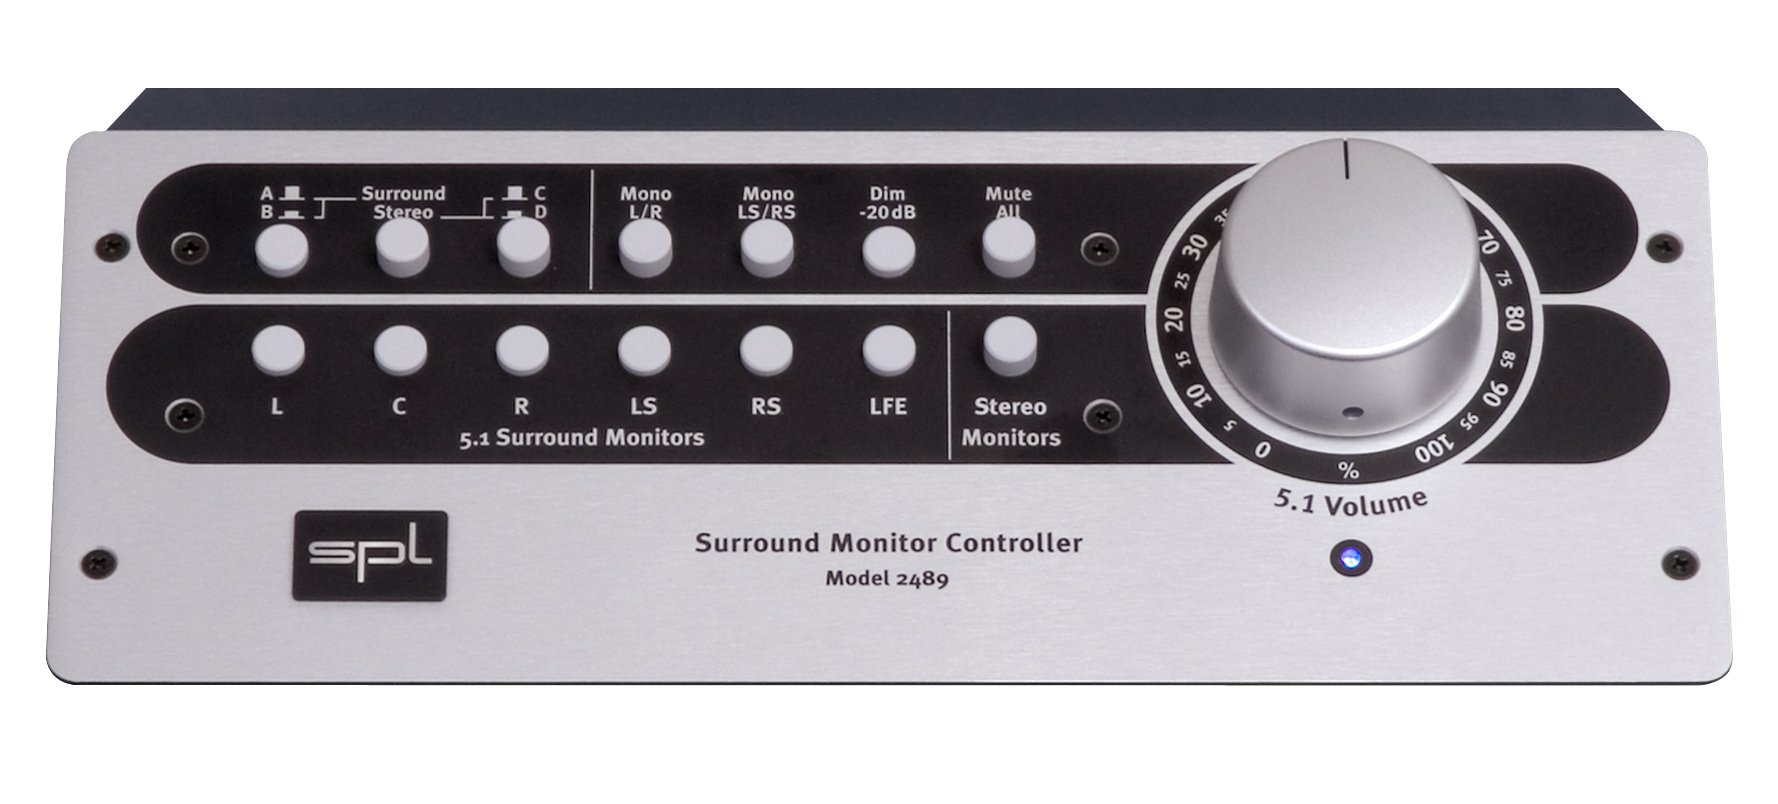 Surround Monitor Contoller - Model 2489